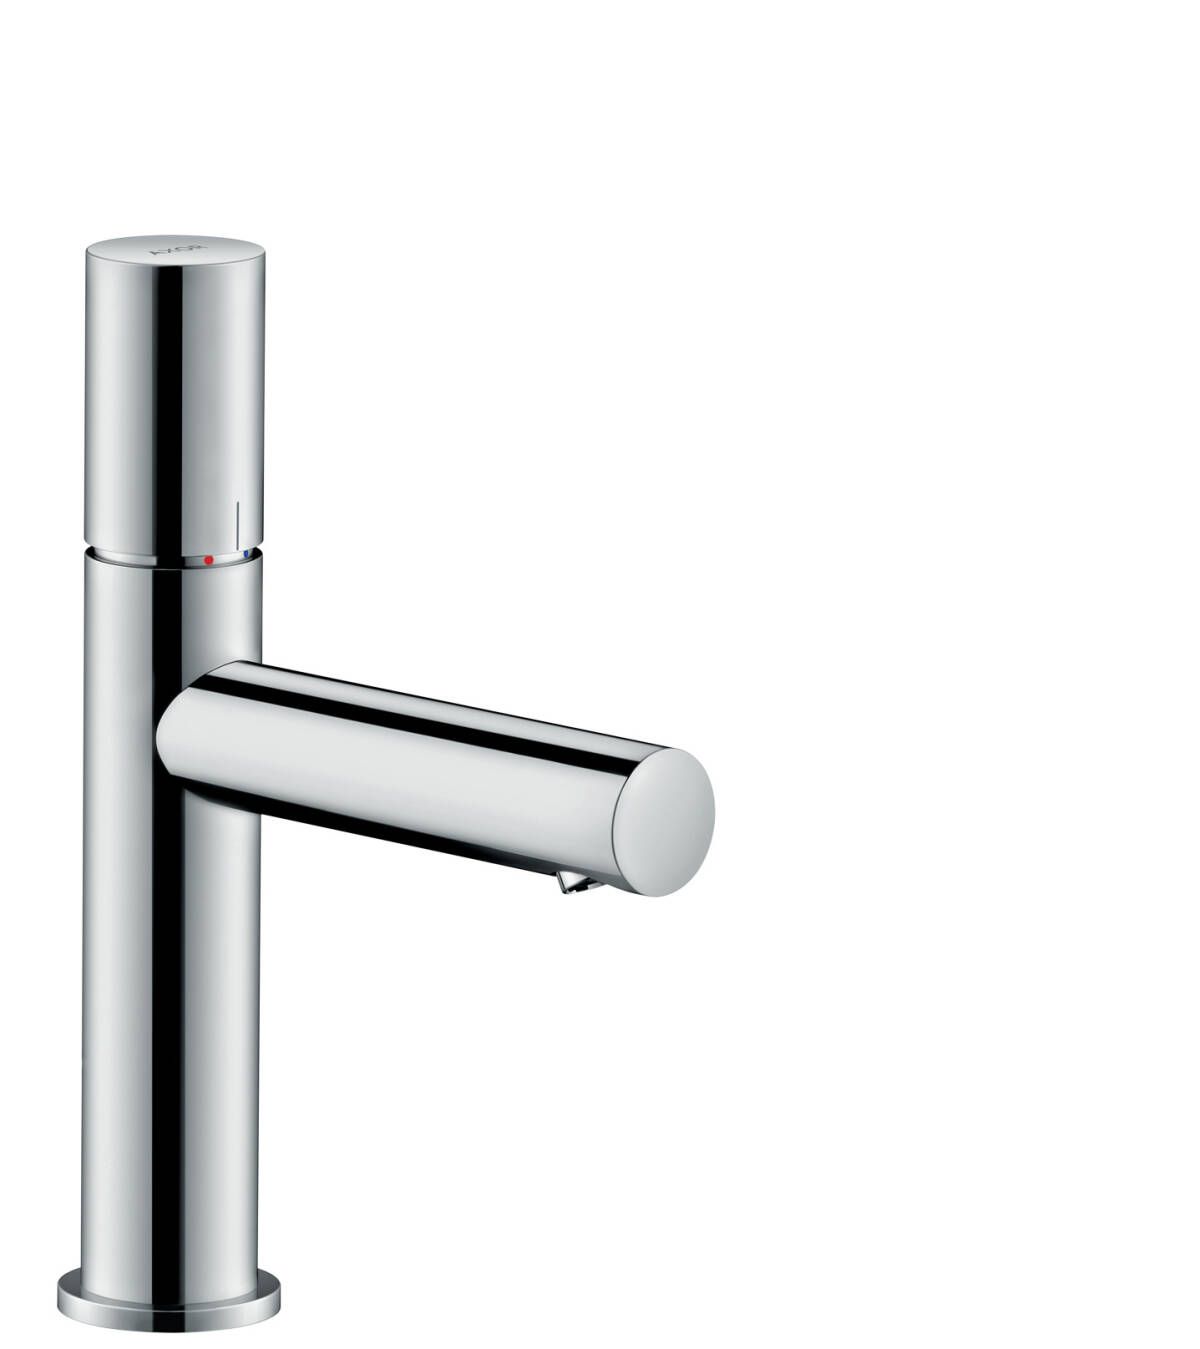 Single lever basin mixer 110 with zero handle and waste set, Chrome, 45002000